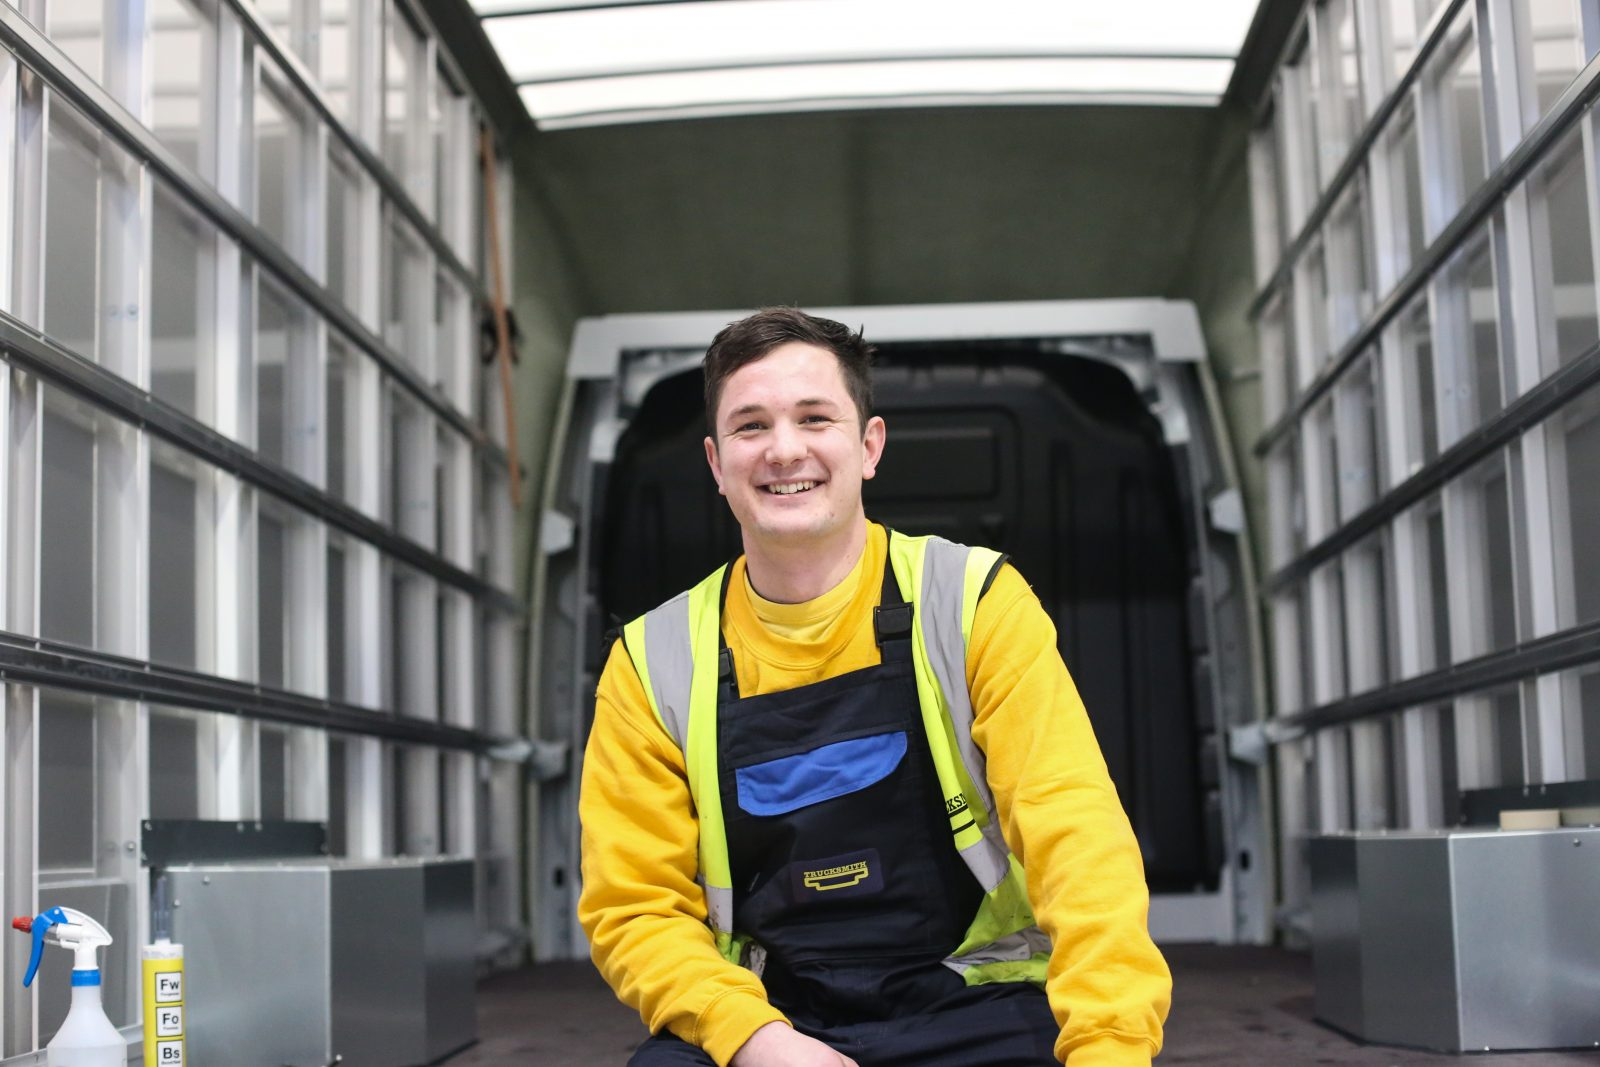 Trucksmith team member, Tylor, sits in the back of a LoLoader wearing his blue and yellow Trucksmith uniform.